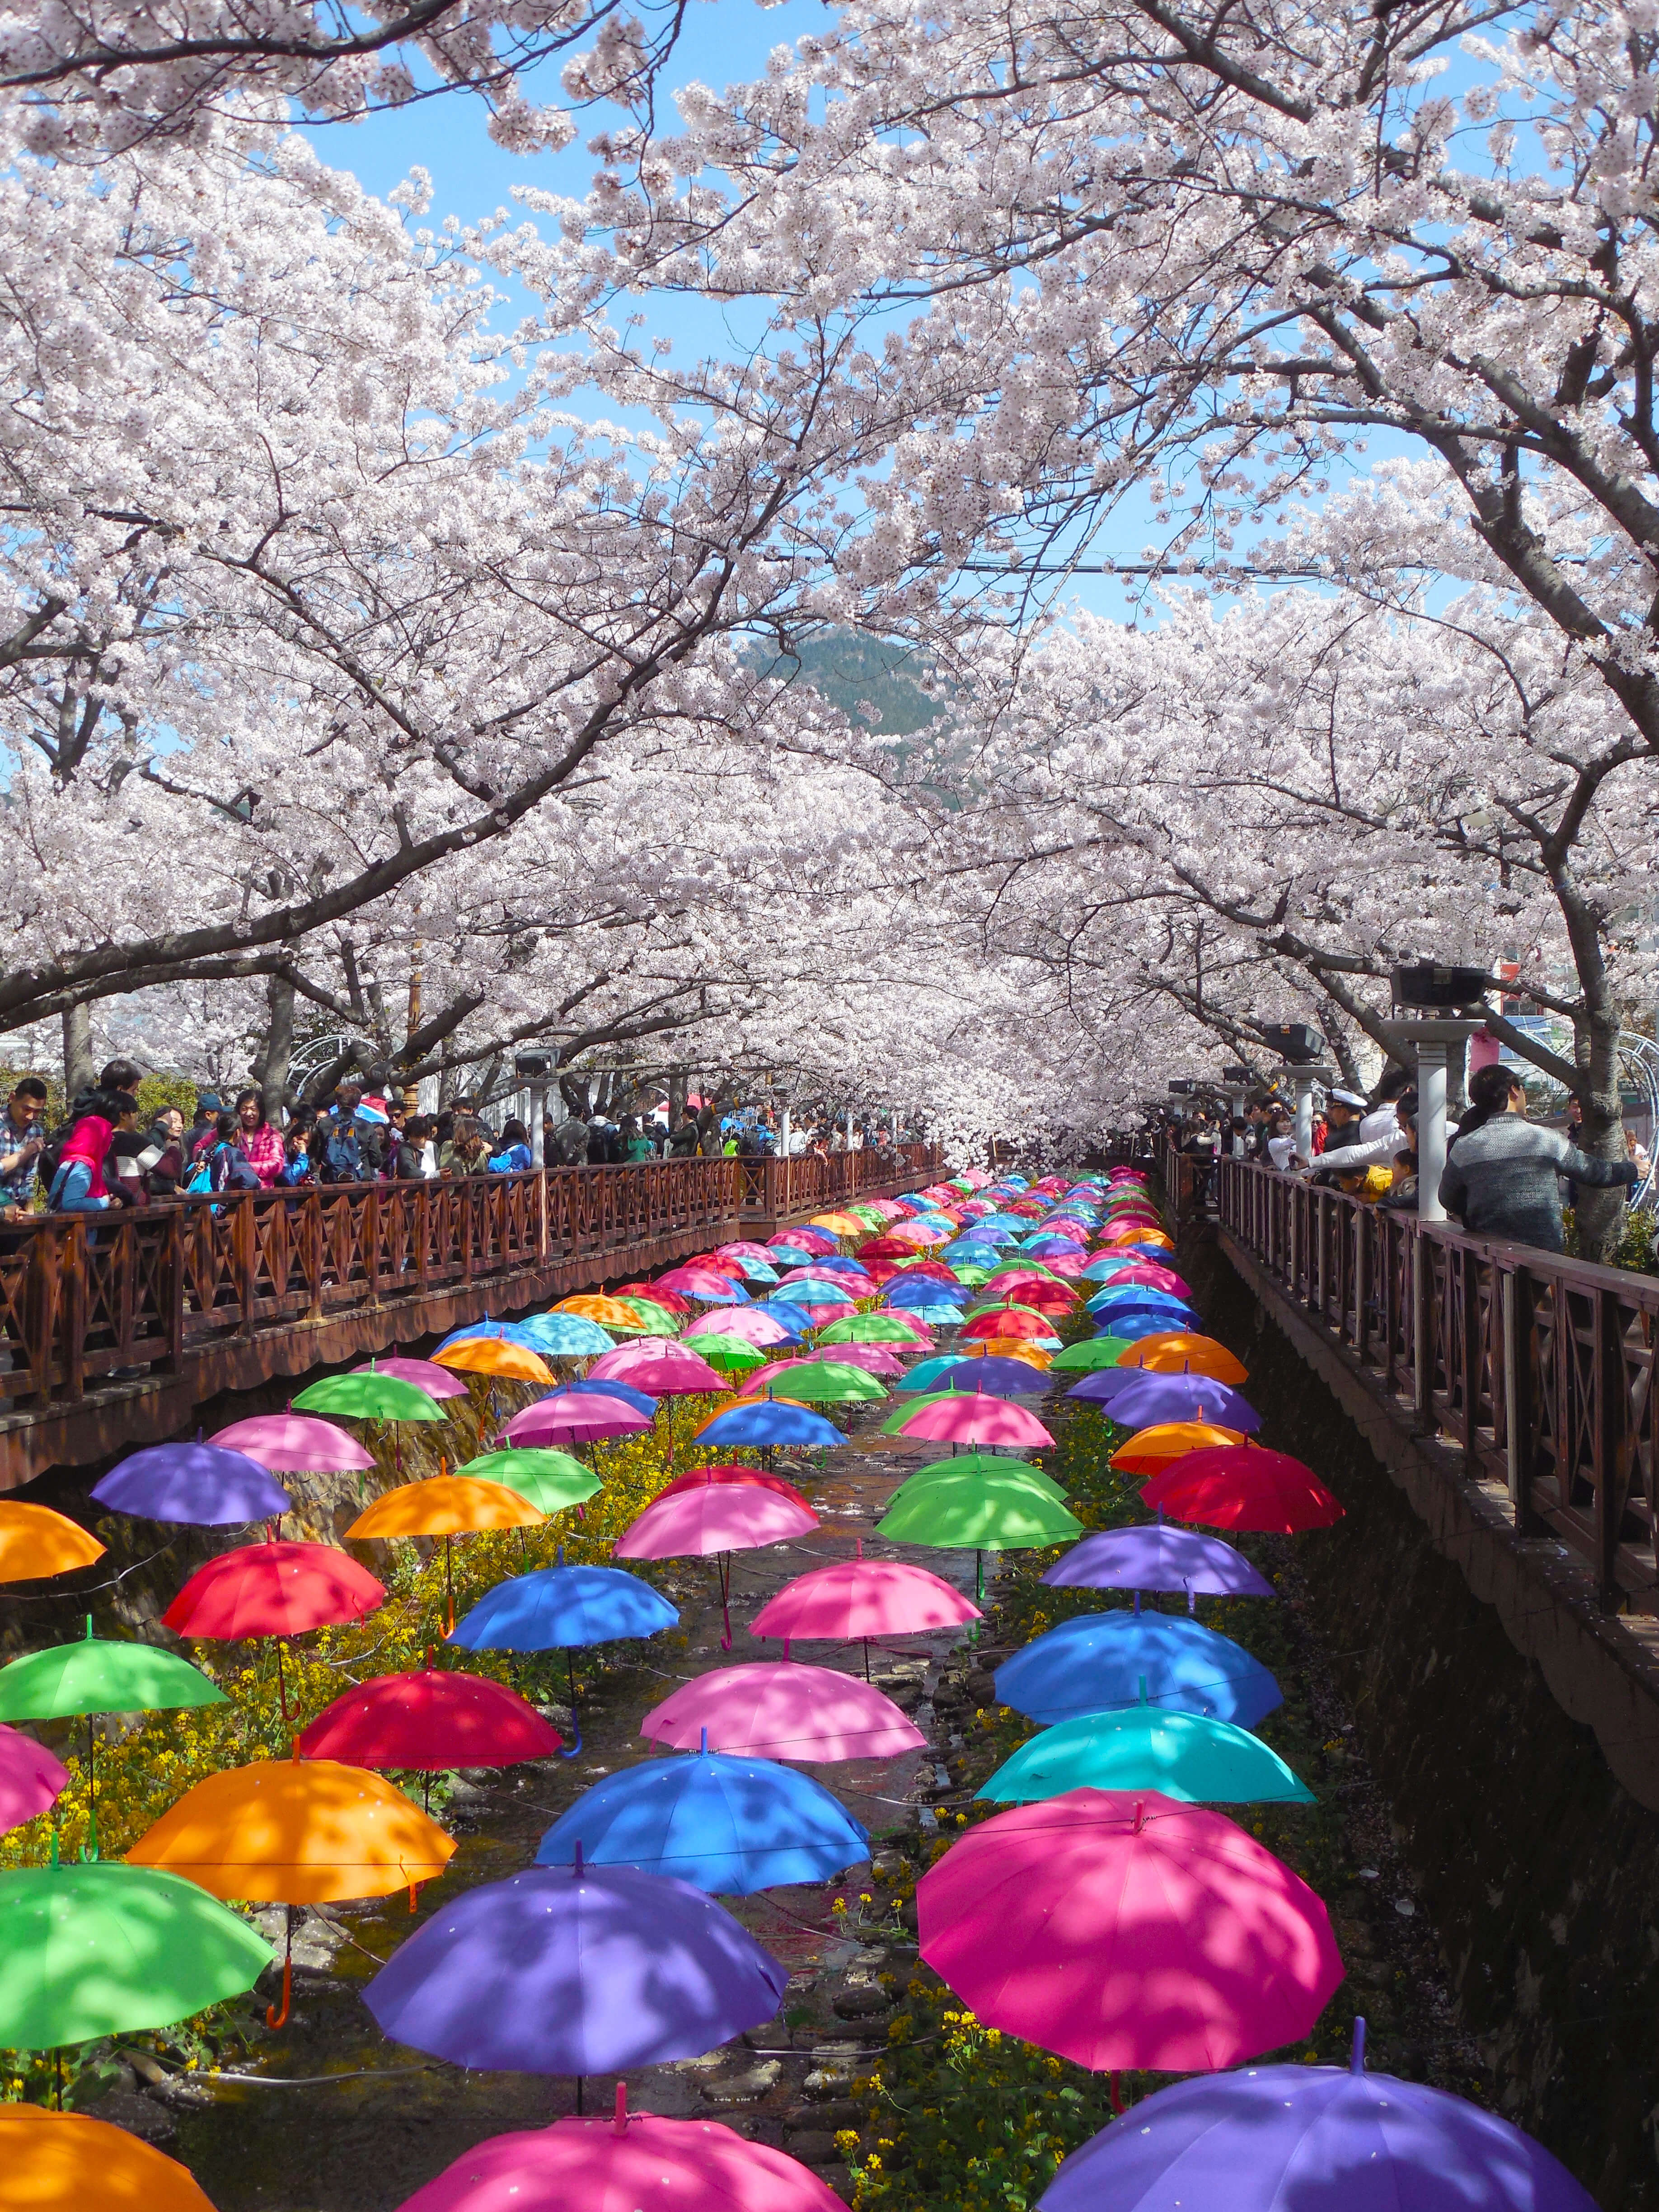 Colored umbrellas under the cherry blossoms